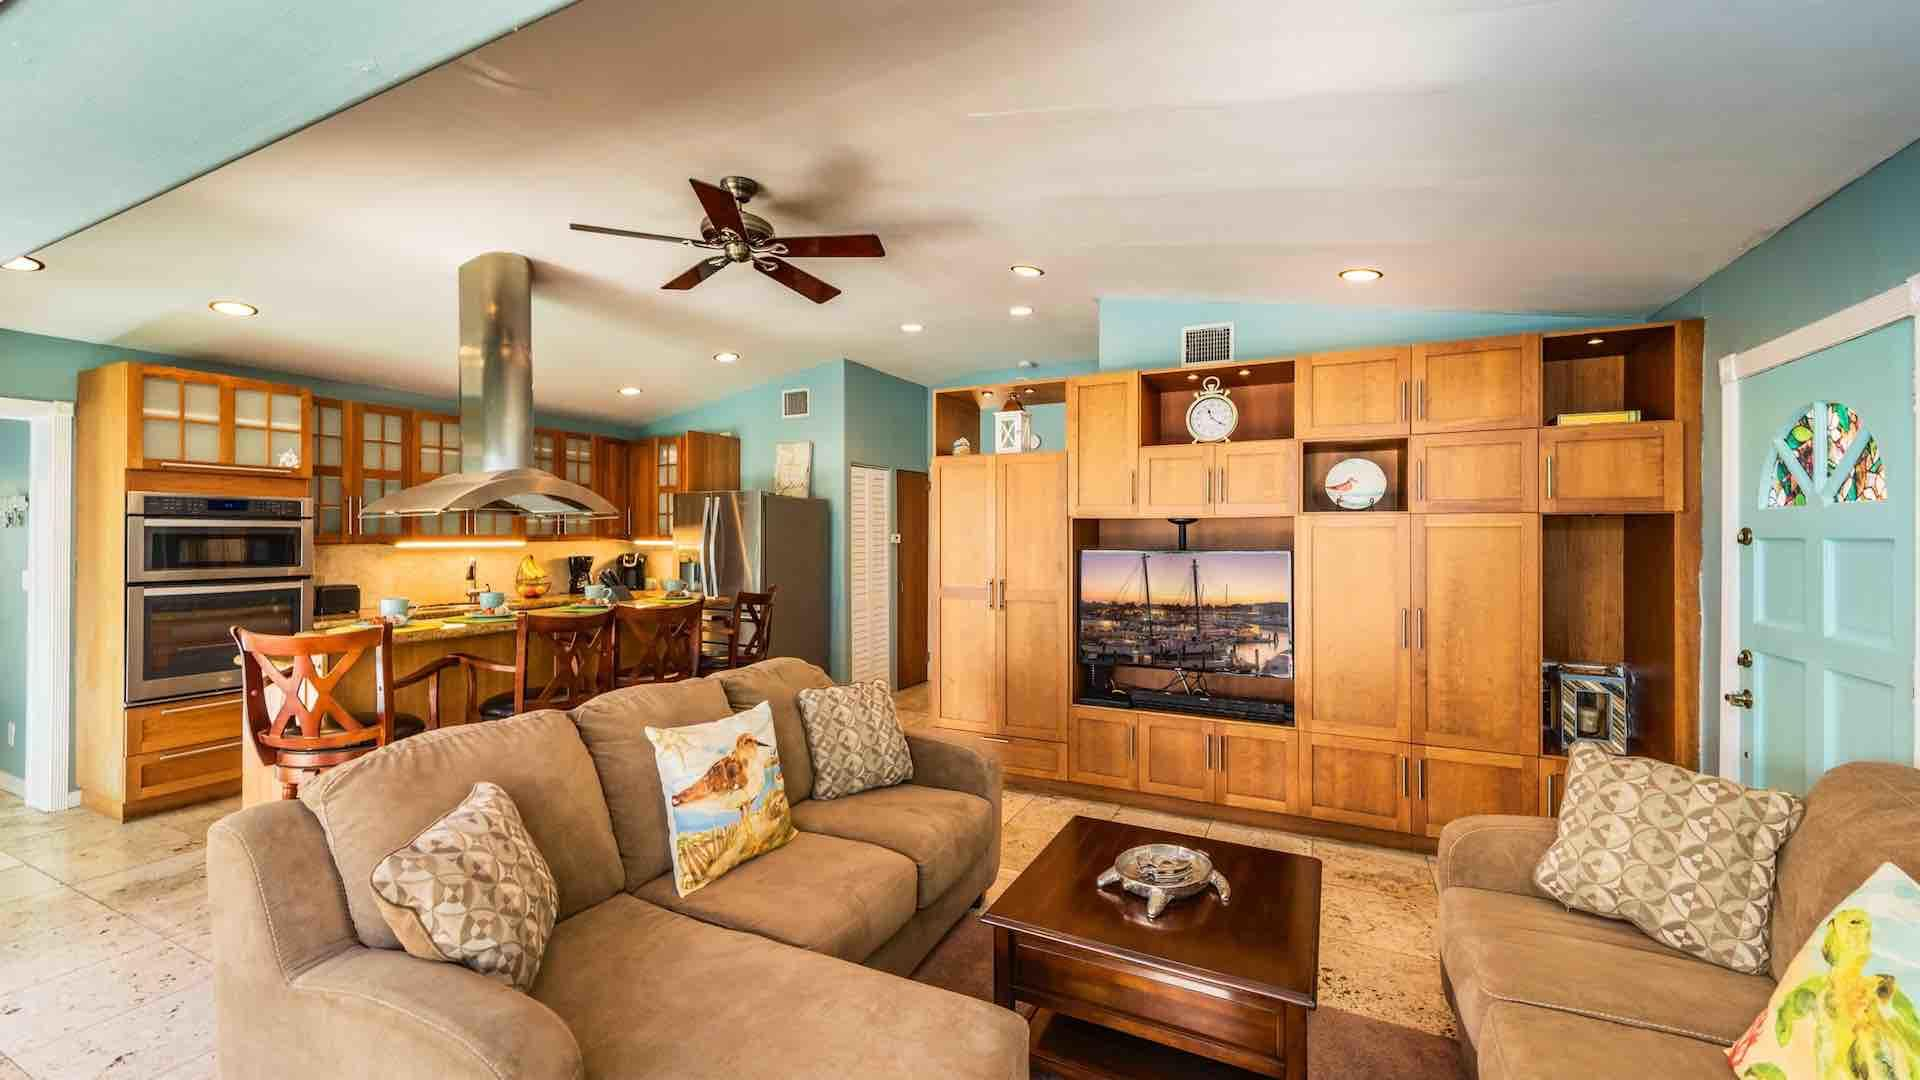 The living room has a large flat screen TV and plenty of seating for everyone...